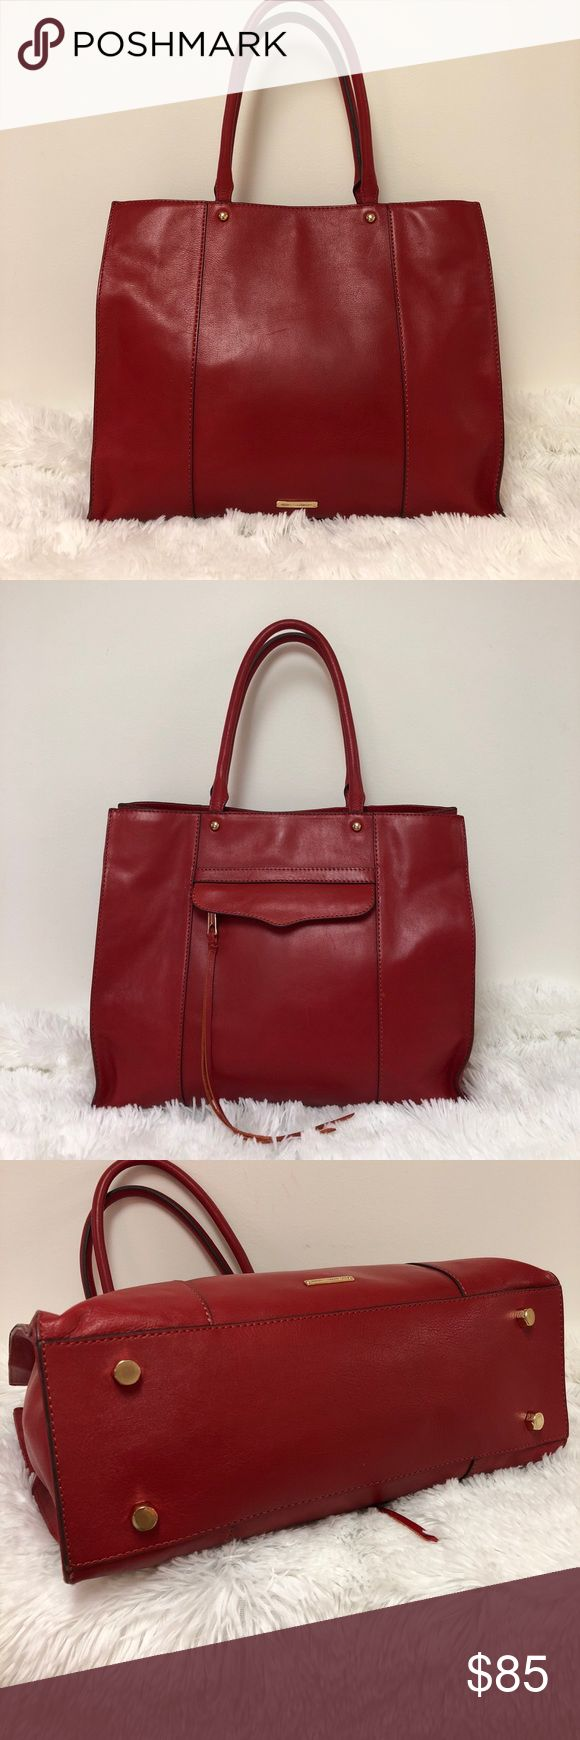 Rebecca Minkoff MAB Satchel Just in time for the holidays! 🎄This beautiful red Rebecca Minkoff satchel is ready and waiting to accompany you on all your Christmas outings. It's big enough to take shopping and classy enough for any Christmas party. It would even make a perfect Christmas gift fo just the right person. It is in very good condition and comes with several extra tassels. See pics for slight corner flaws. Interior is in excellent condition. Overall this is a very well maintained…